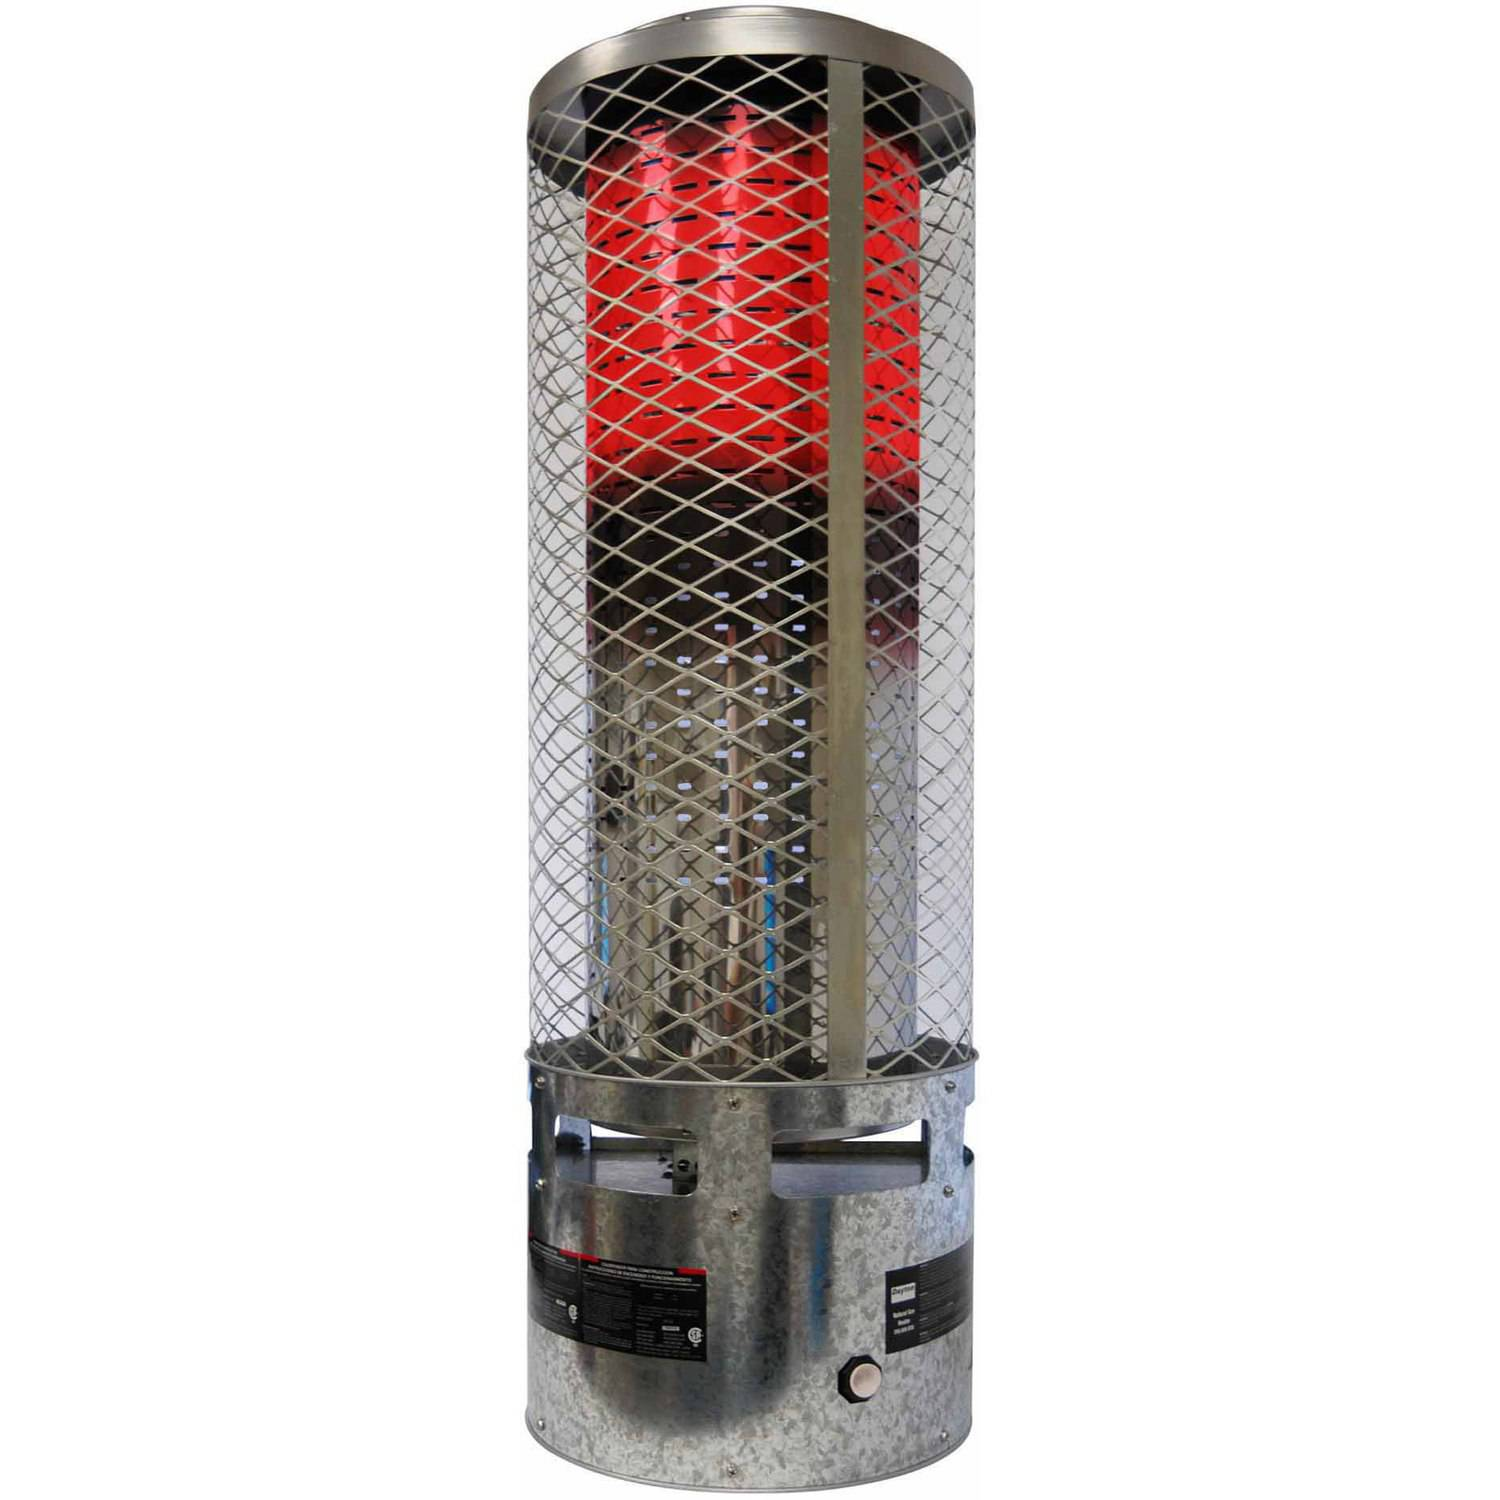 Dyna-Glo Delux 250,000 BTU Natural Gas Radiant Heater